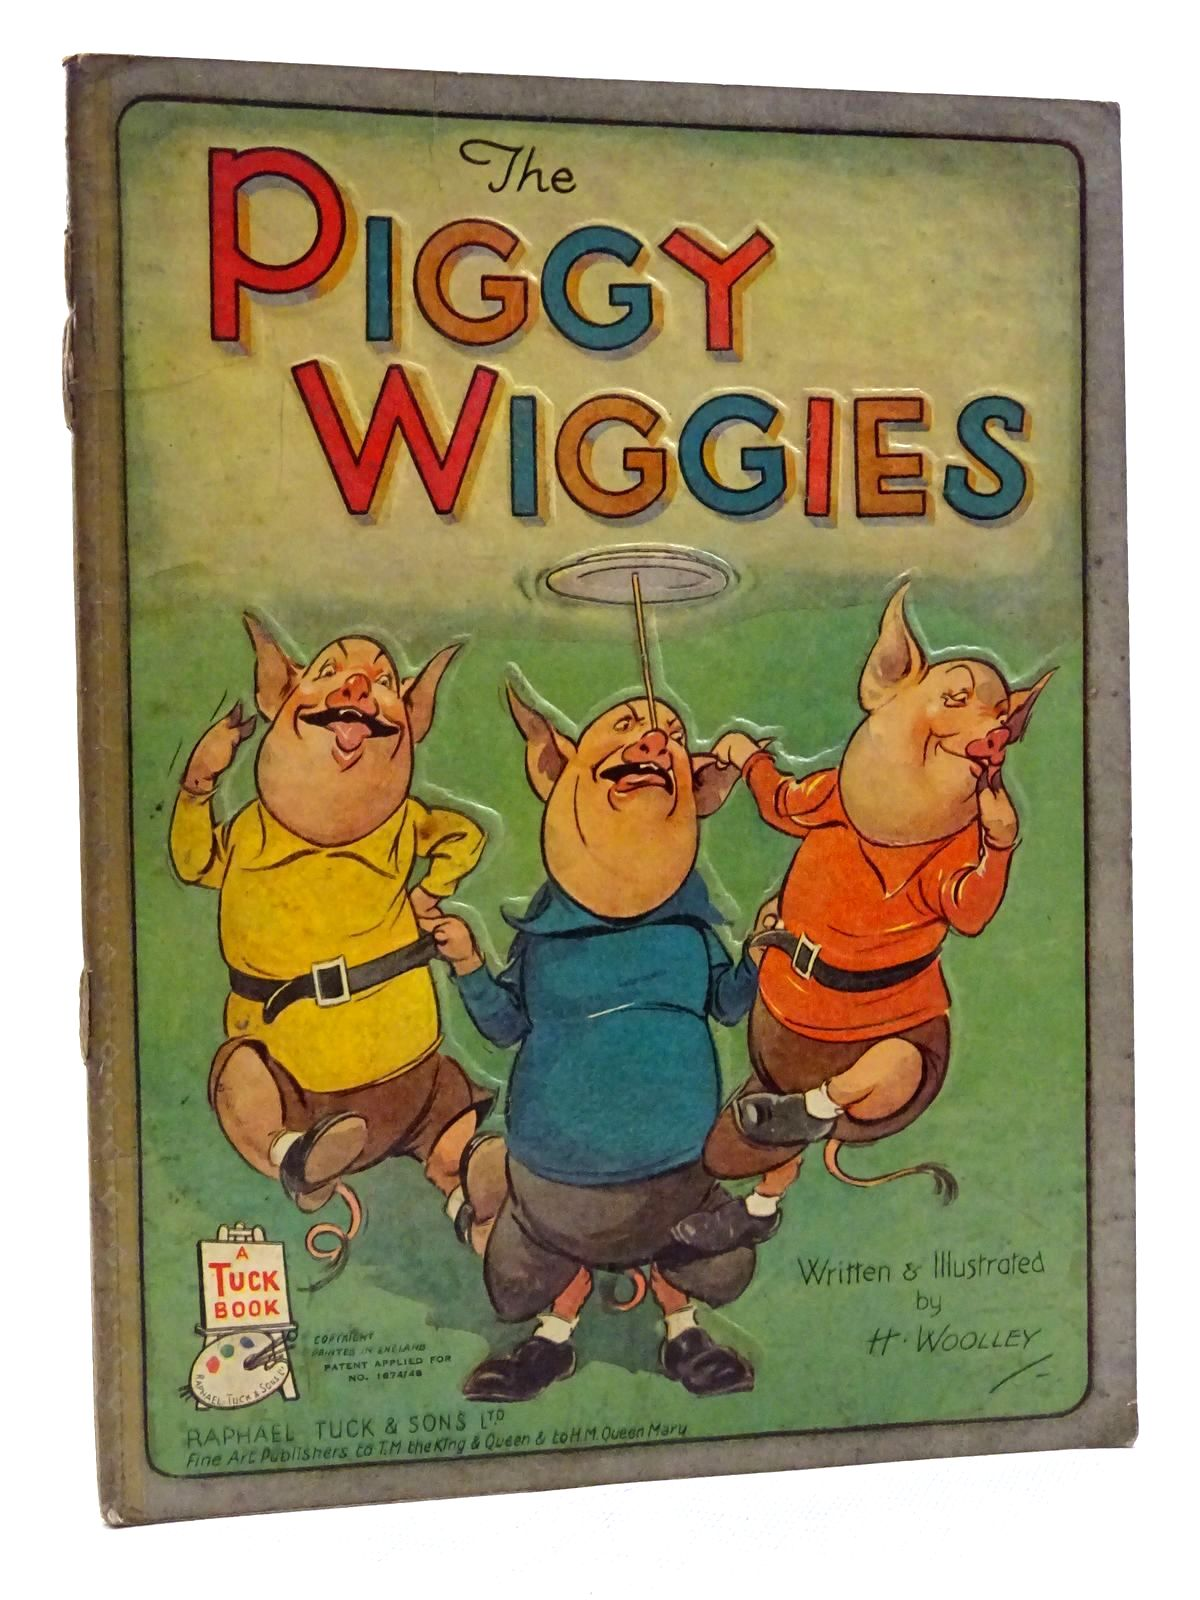 Photo of THE PIGGY WIGGIES written by Woolley, H. illustrated by Woolley, H. published by Raphael Tuck & Sons Ltd. (STOCK CODE: 2125168)  for sale by Stella & Rose's Books